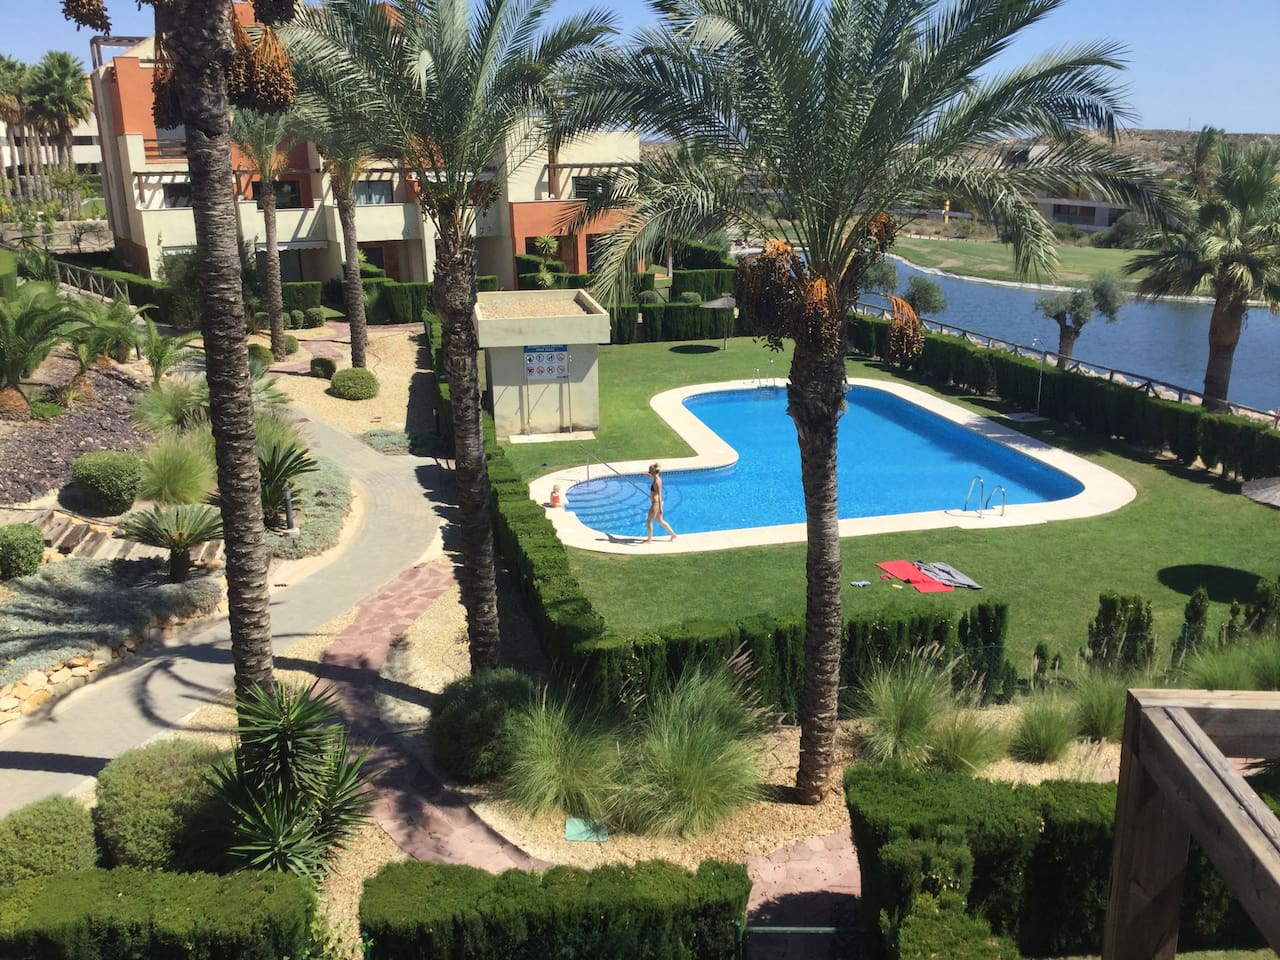 The view of the pool from the roof terrace. It is very near, so you can take a refreshing 'dip' whenever you feel like it!